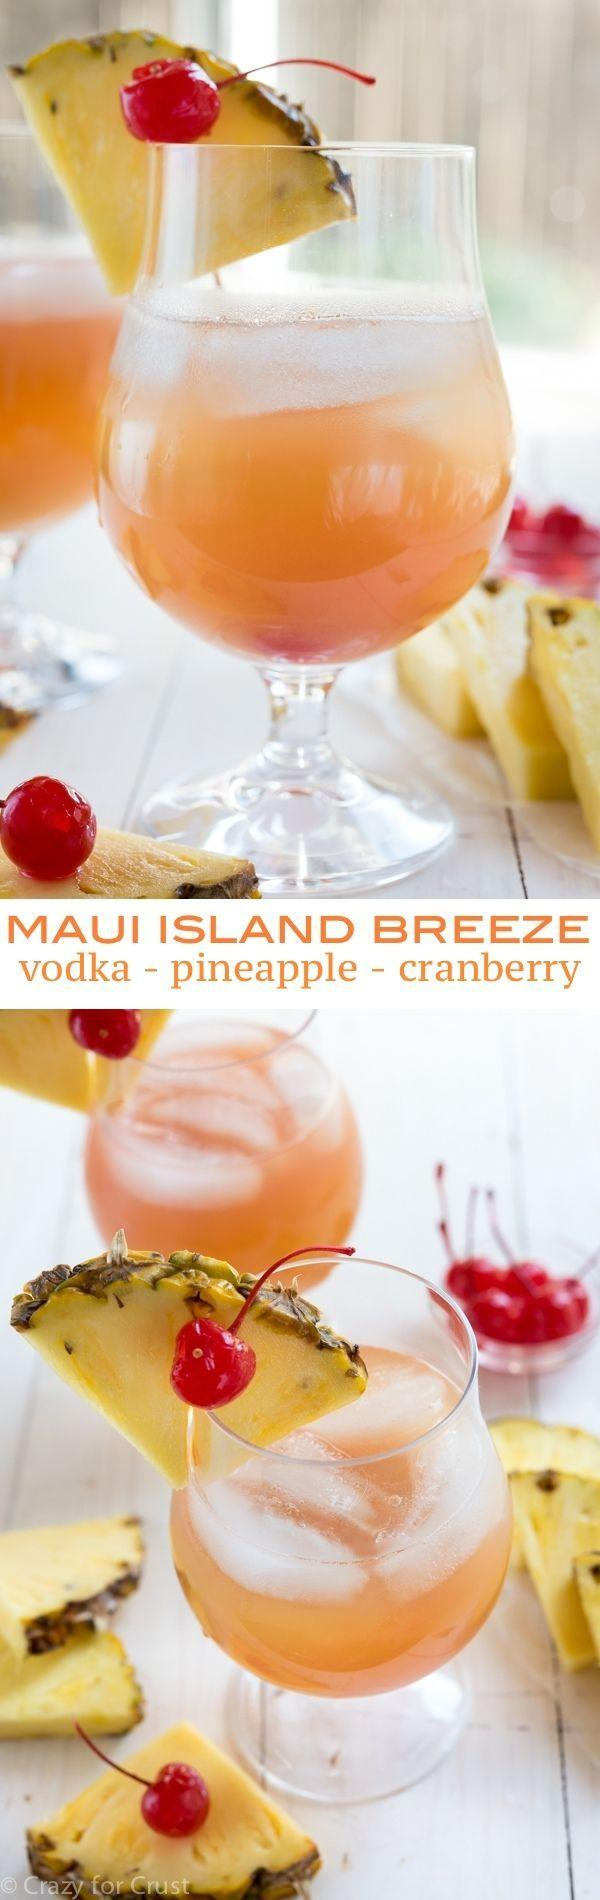 Wedding - Maui Island Breeze Cocktail